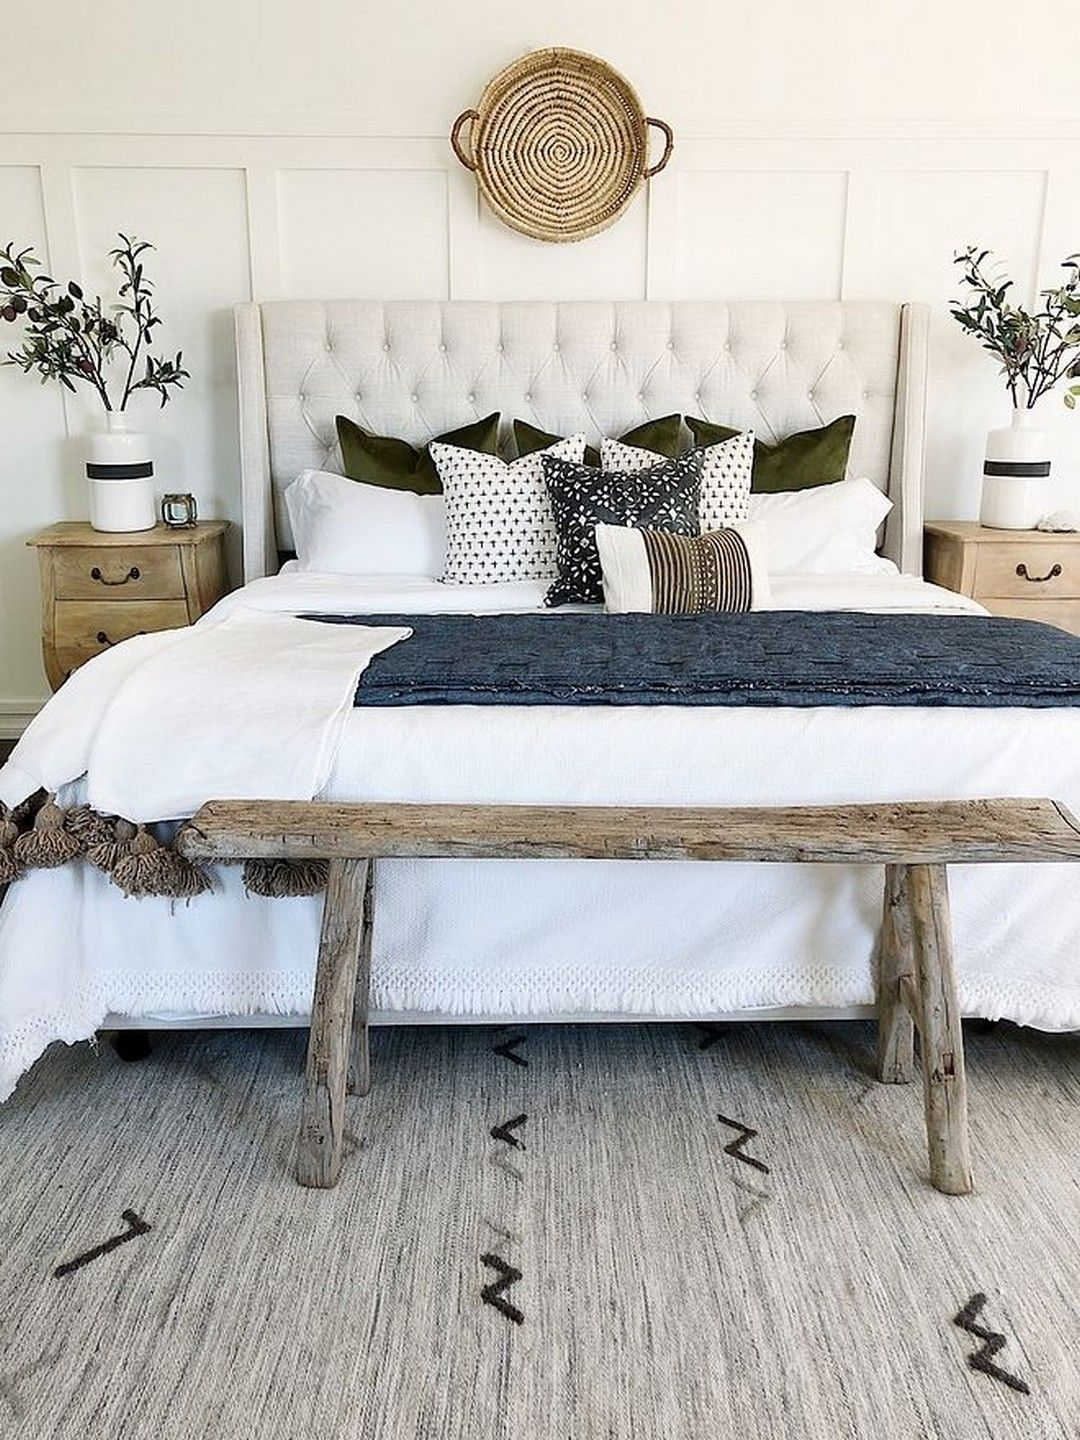 27 Ways In Which You Can Style Up Your Bedroom For Free #modernfarmhousebedroom